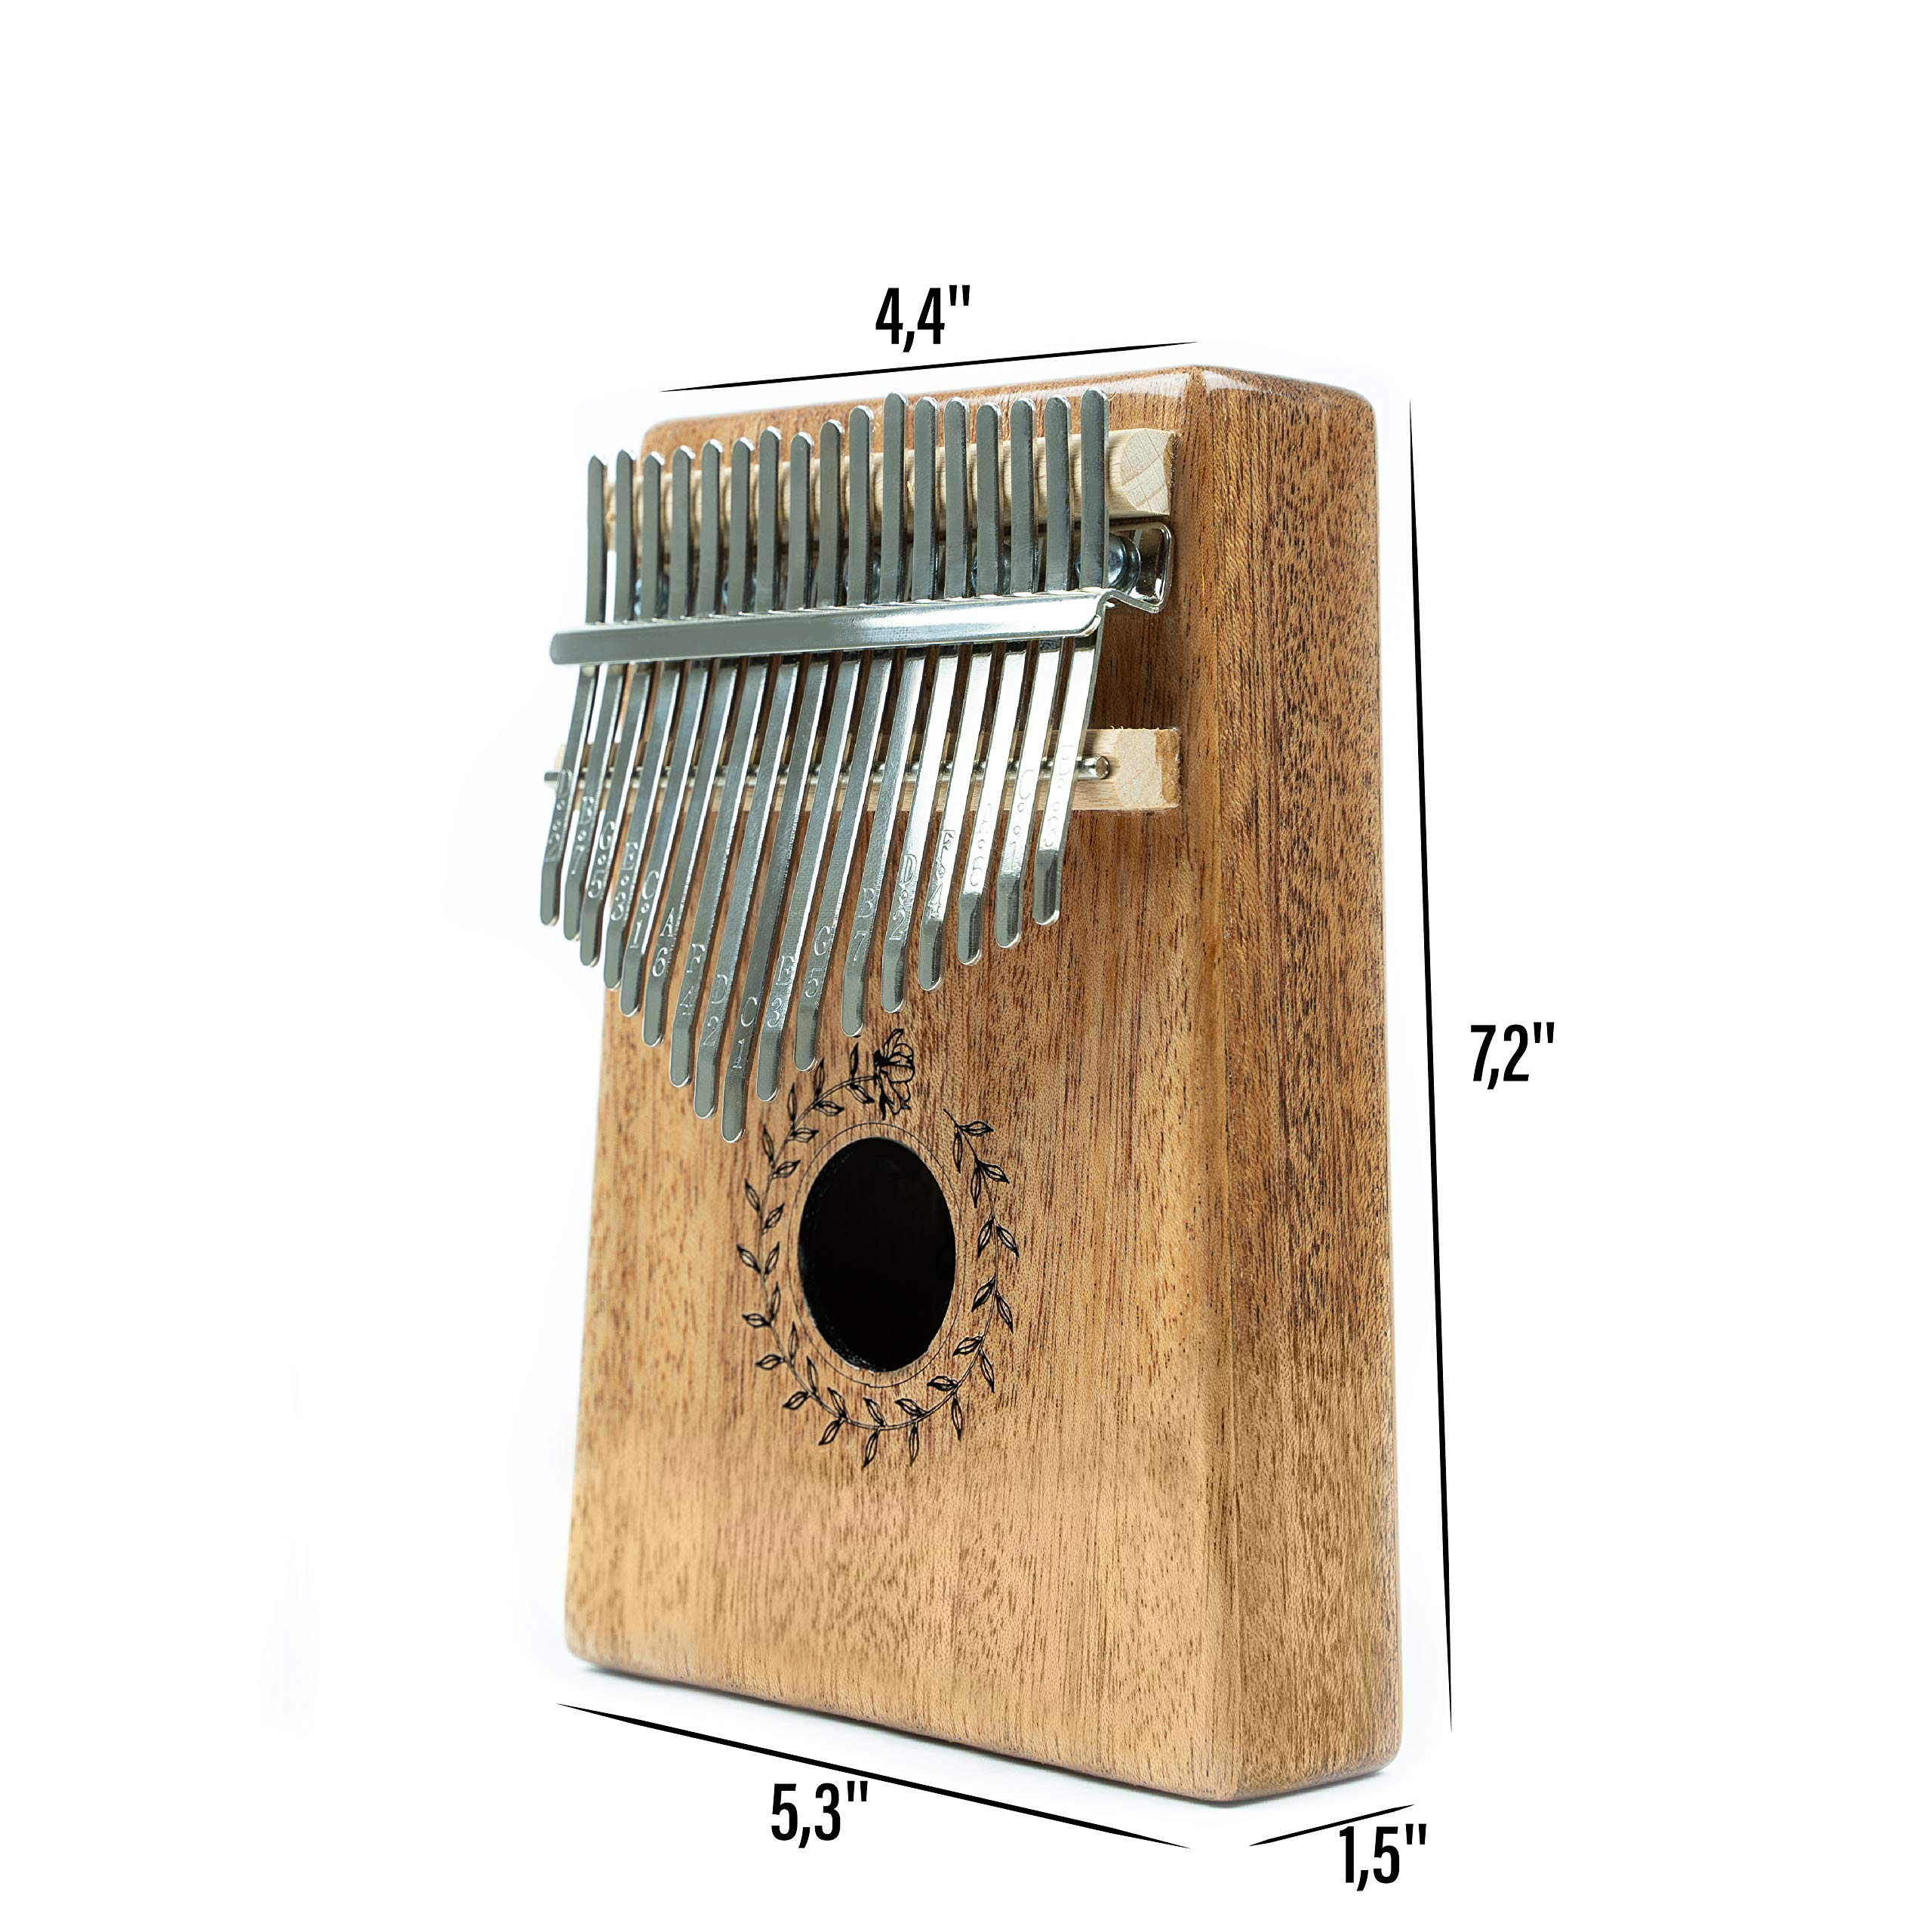 Soundful 17 Key Kalimba Thumb Piano, Solid Mahogany Body Finger Piano, Professional Mbira Musical Instrument with Tuning Hammer and Protective Case by Soundful (Image #2)